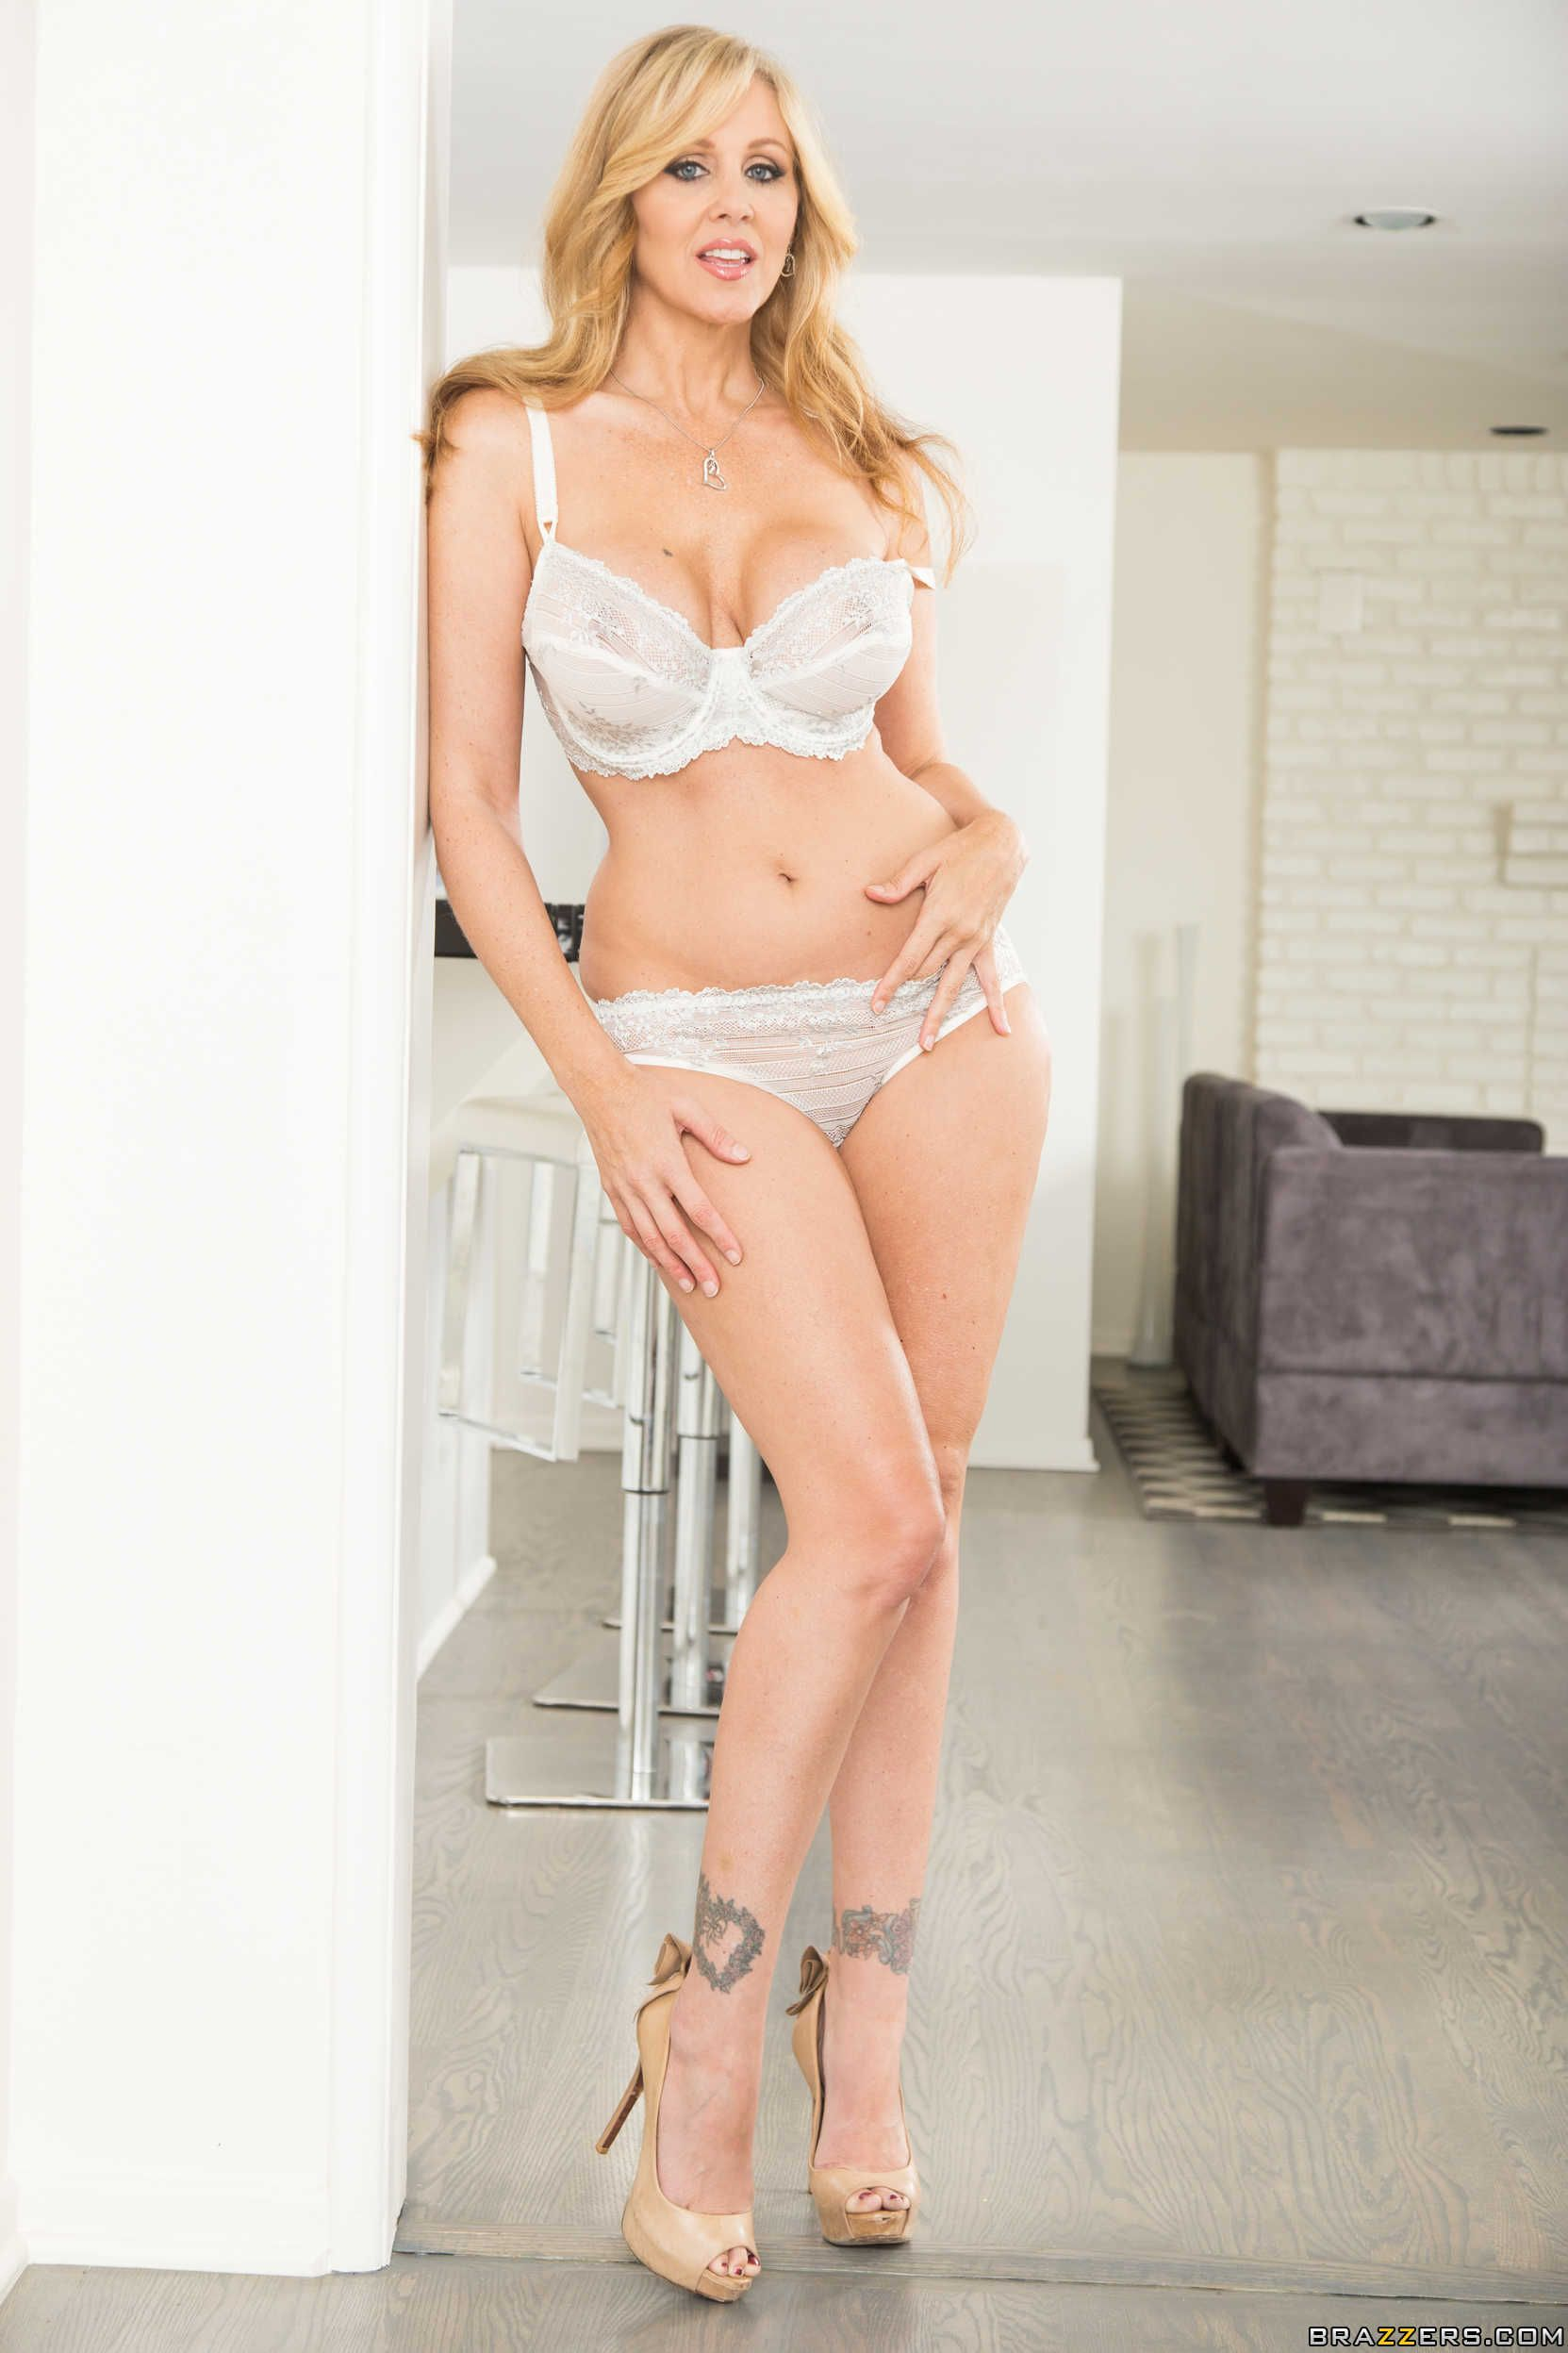 julia ann stepmom